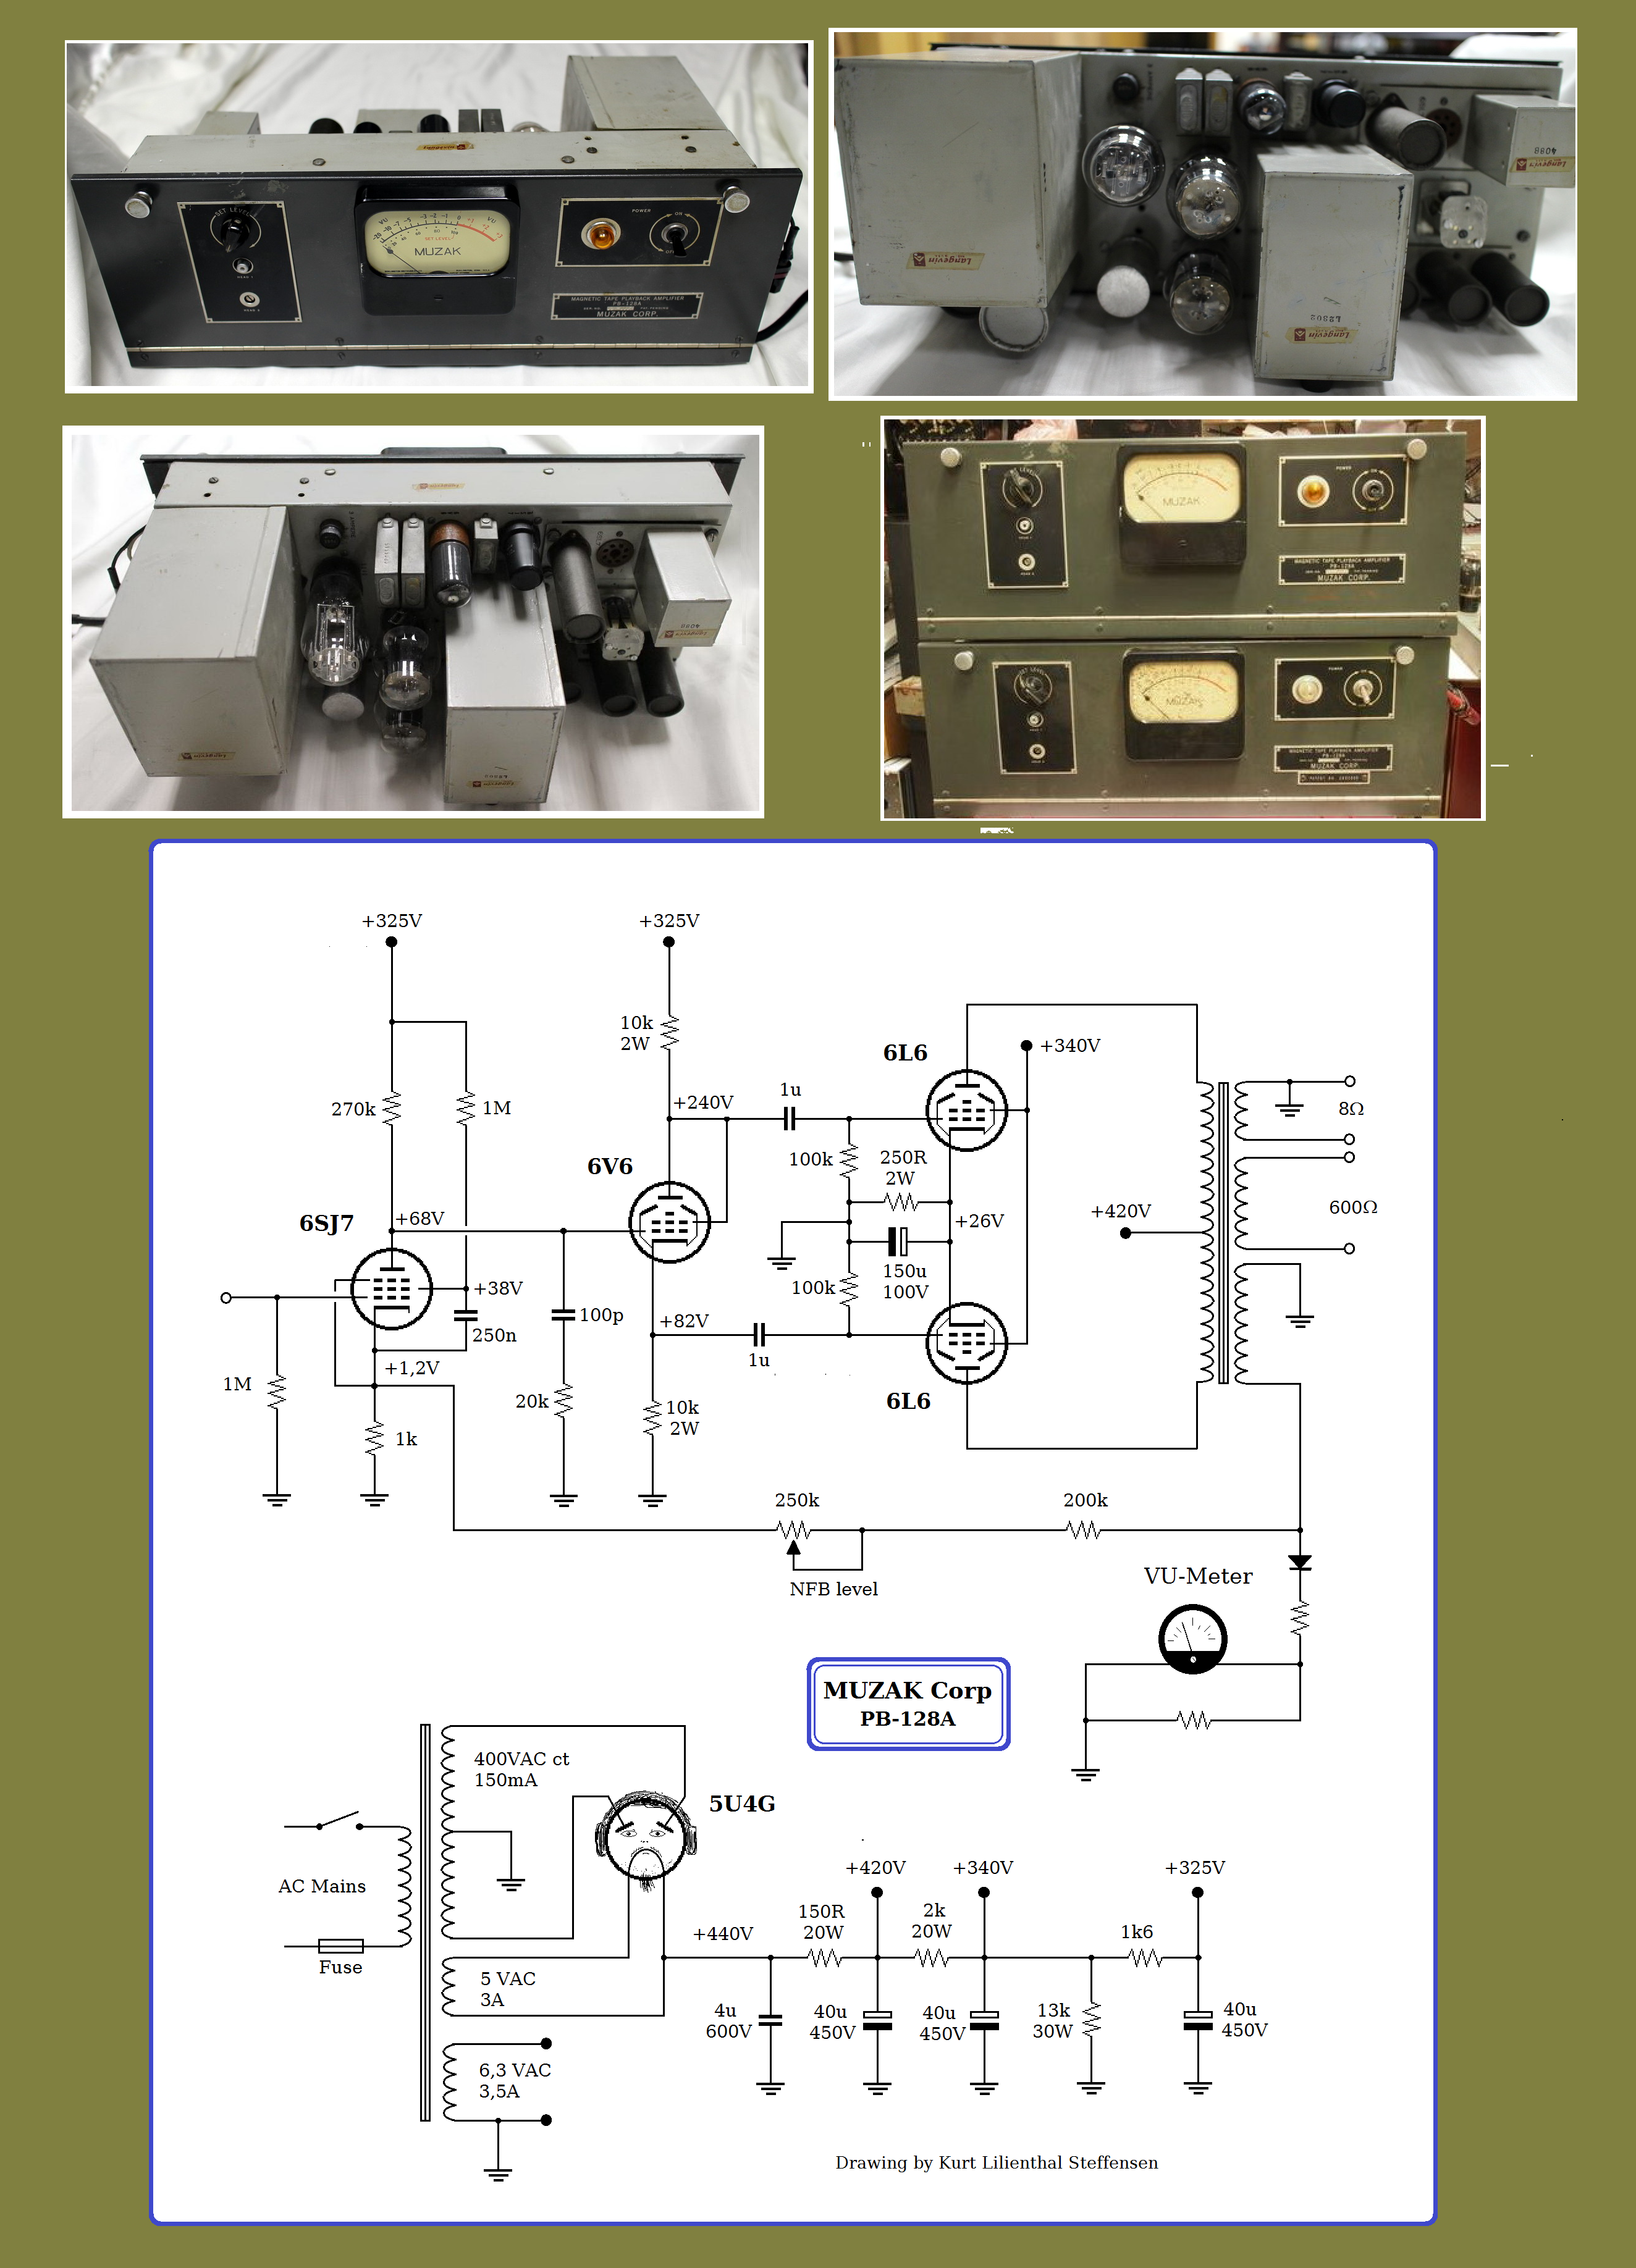 38v Wiring Diagram Electrical Schematics P B Muzak Speakers Smart Diagrams U2022 Switched Outlet